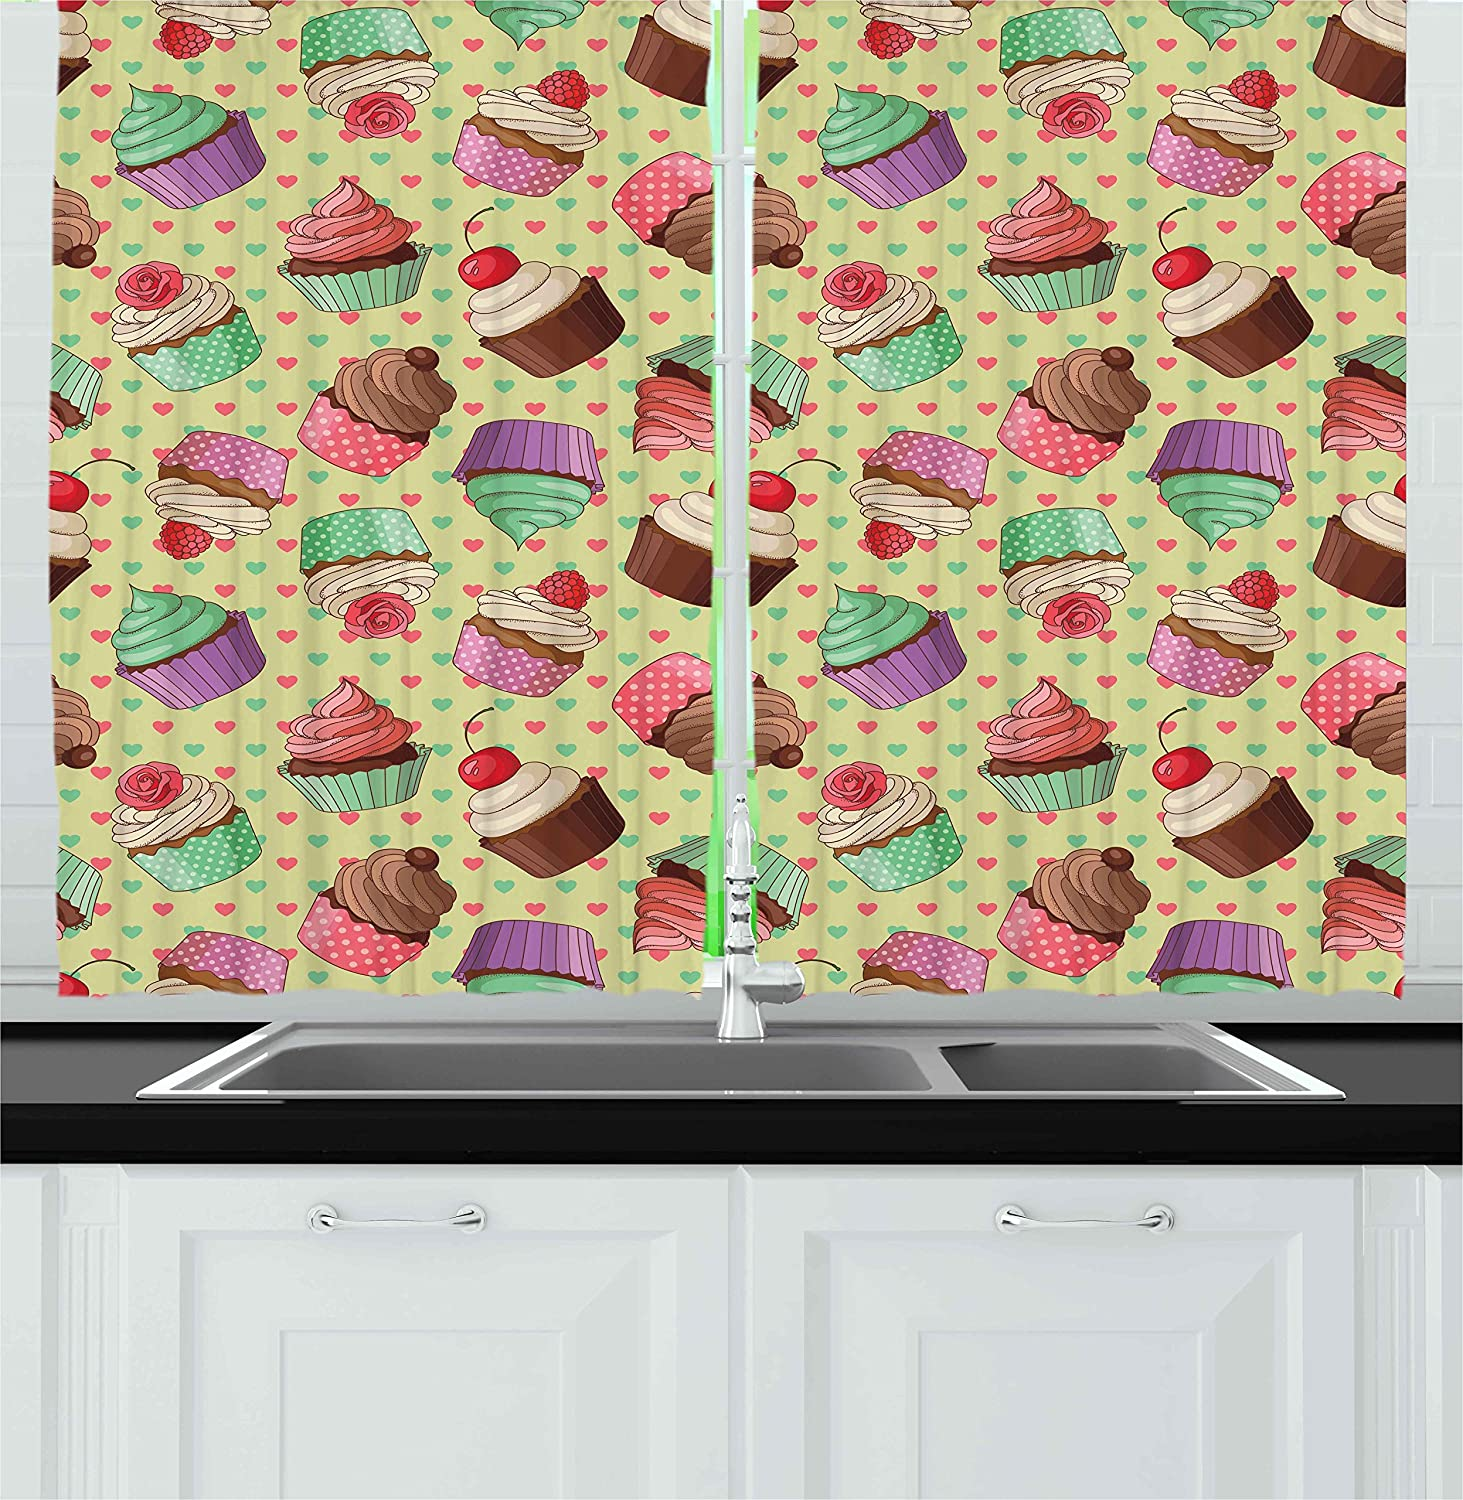 Ambesonne Kitchen Decor Kitchen Curtains, Coffee Shop Bakery Inspired Cupcake Pattern on a Polka Dot Hearts Backdrop, Window Drapes 2 Panels Set for Kitchen Cafe, 55 W X 39 L inches, Multicolor